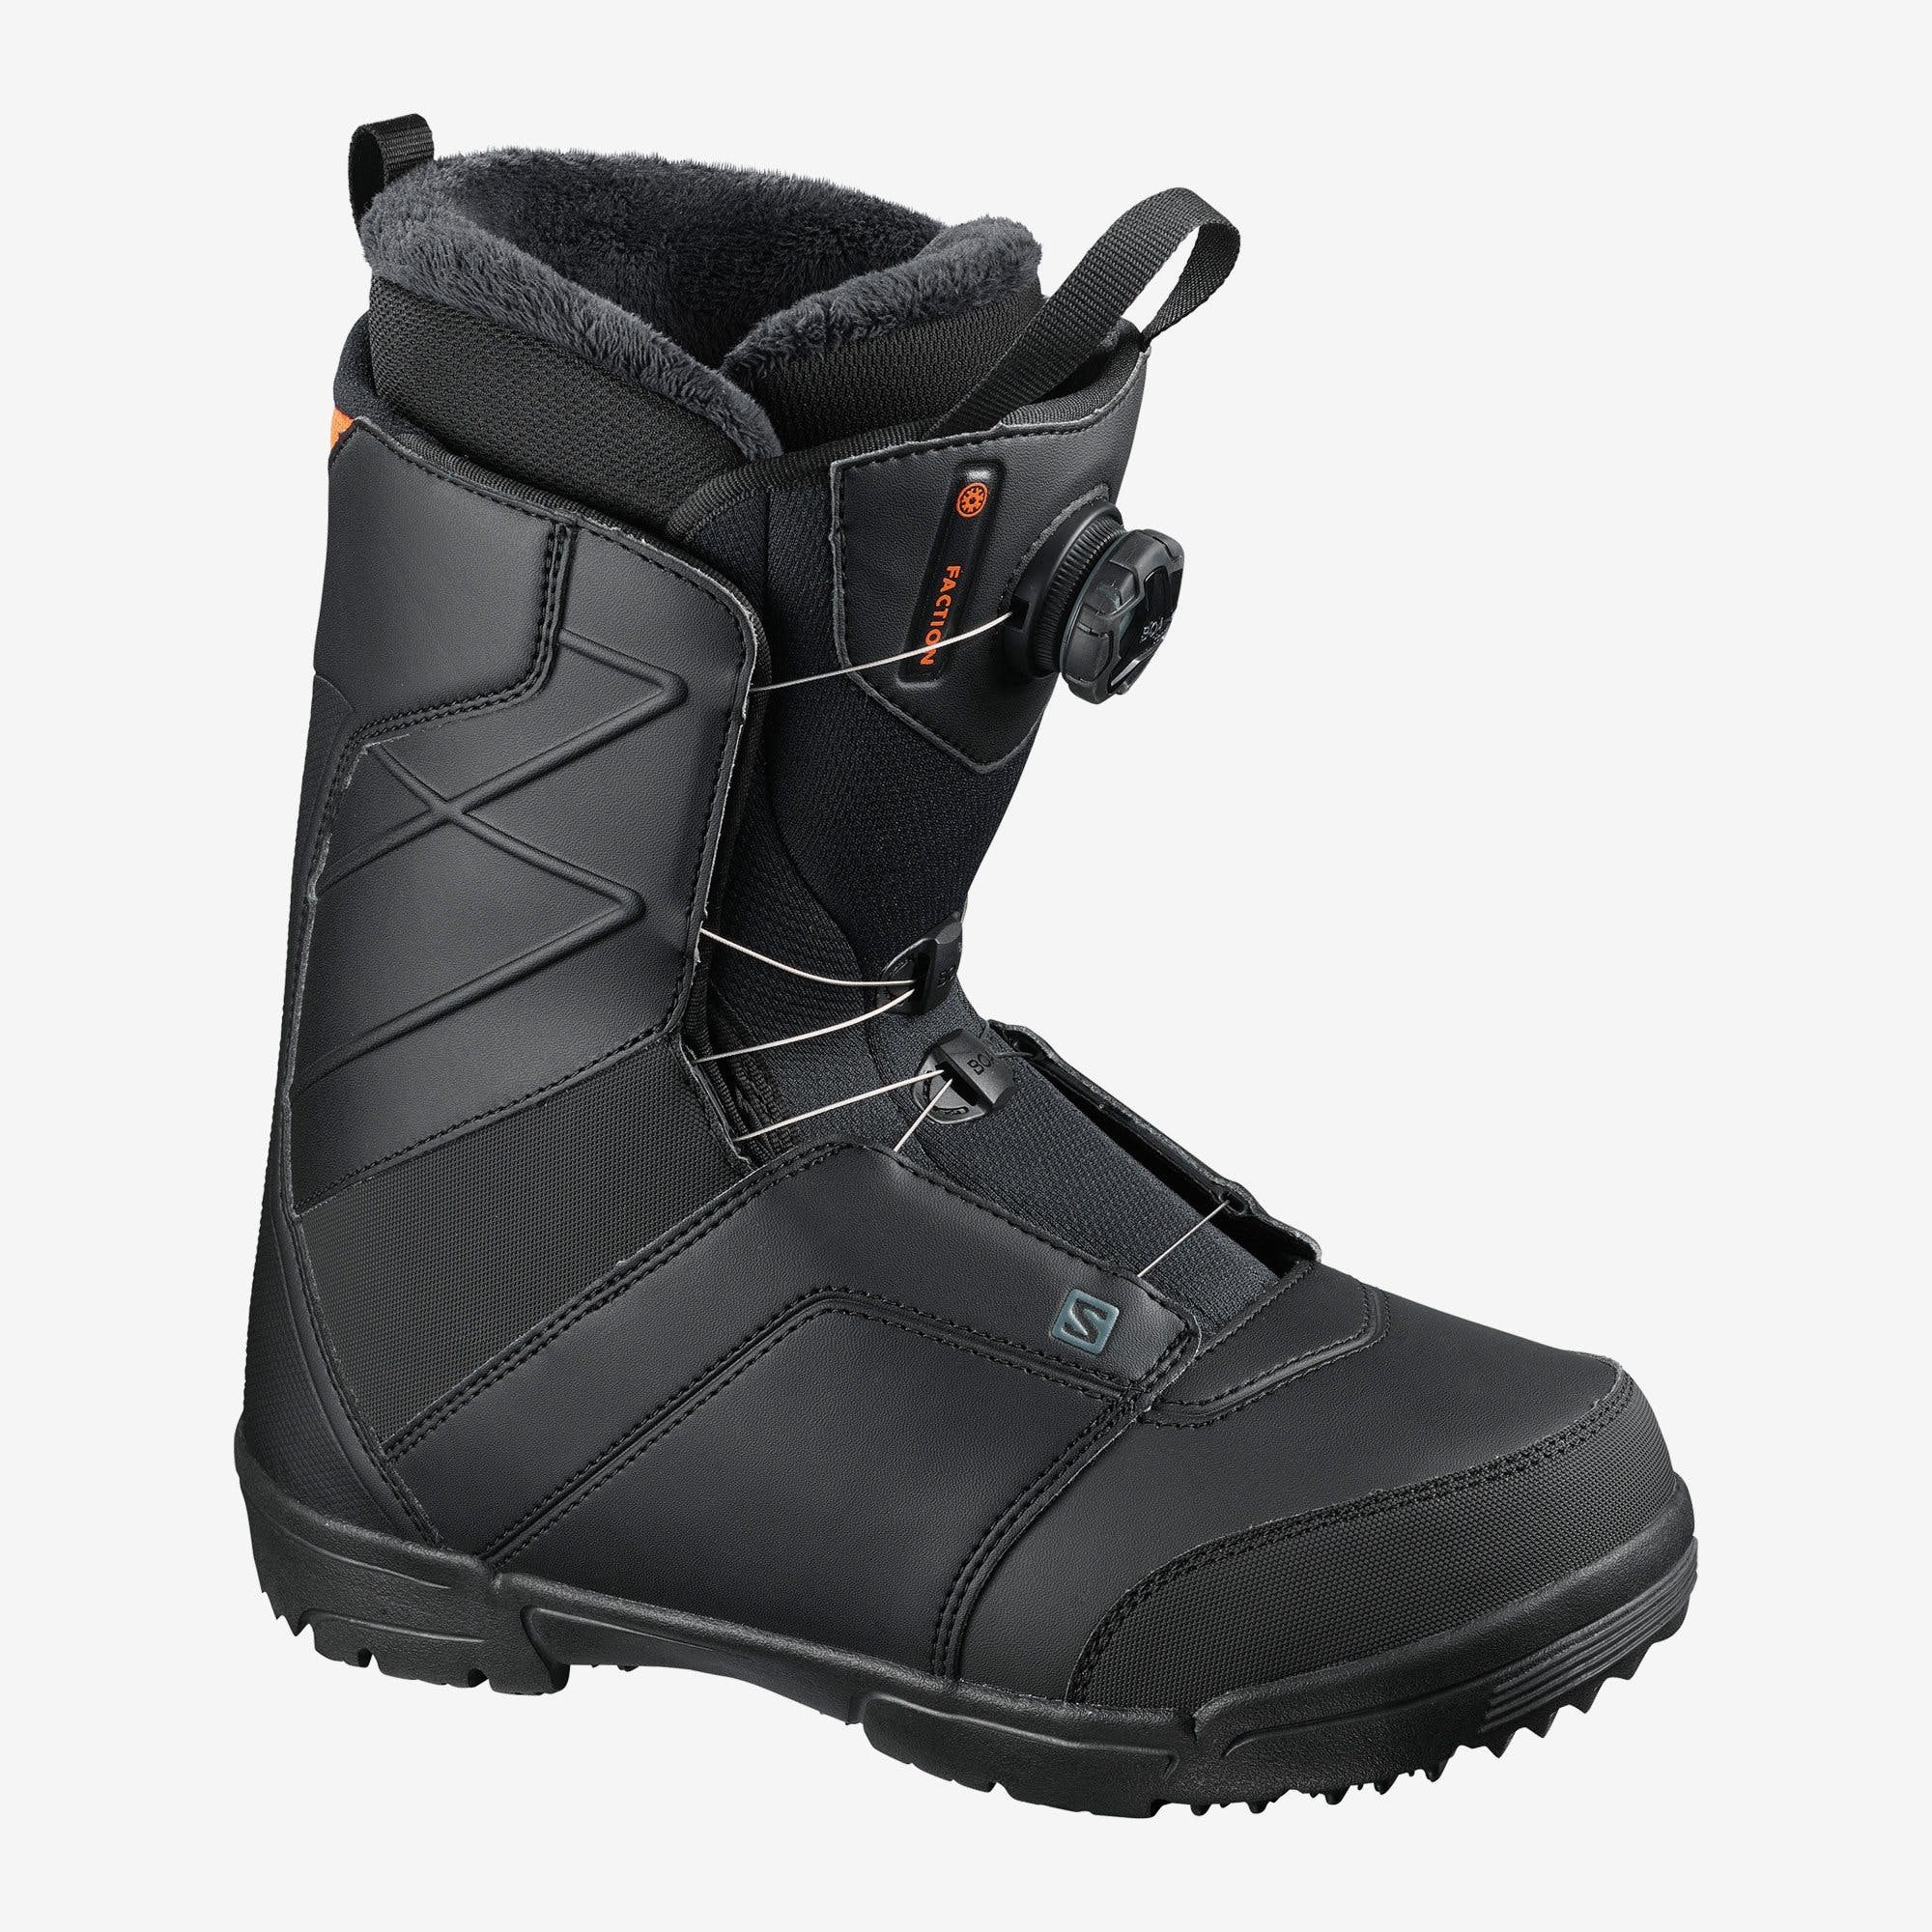 Salomon Faction BOA Snowboard Boots · 2021